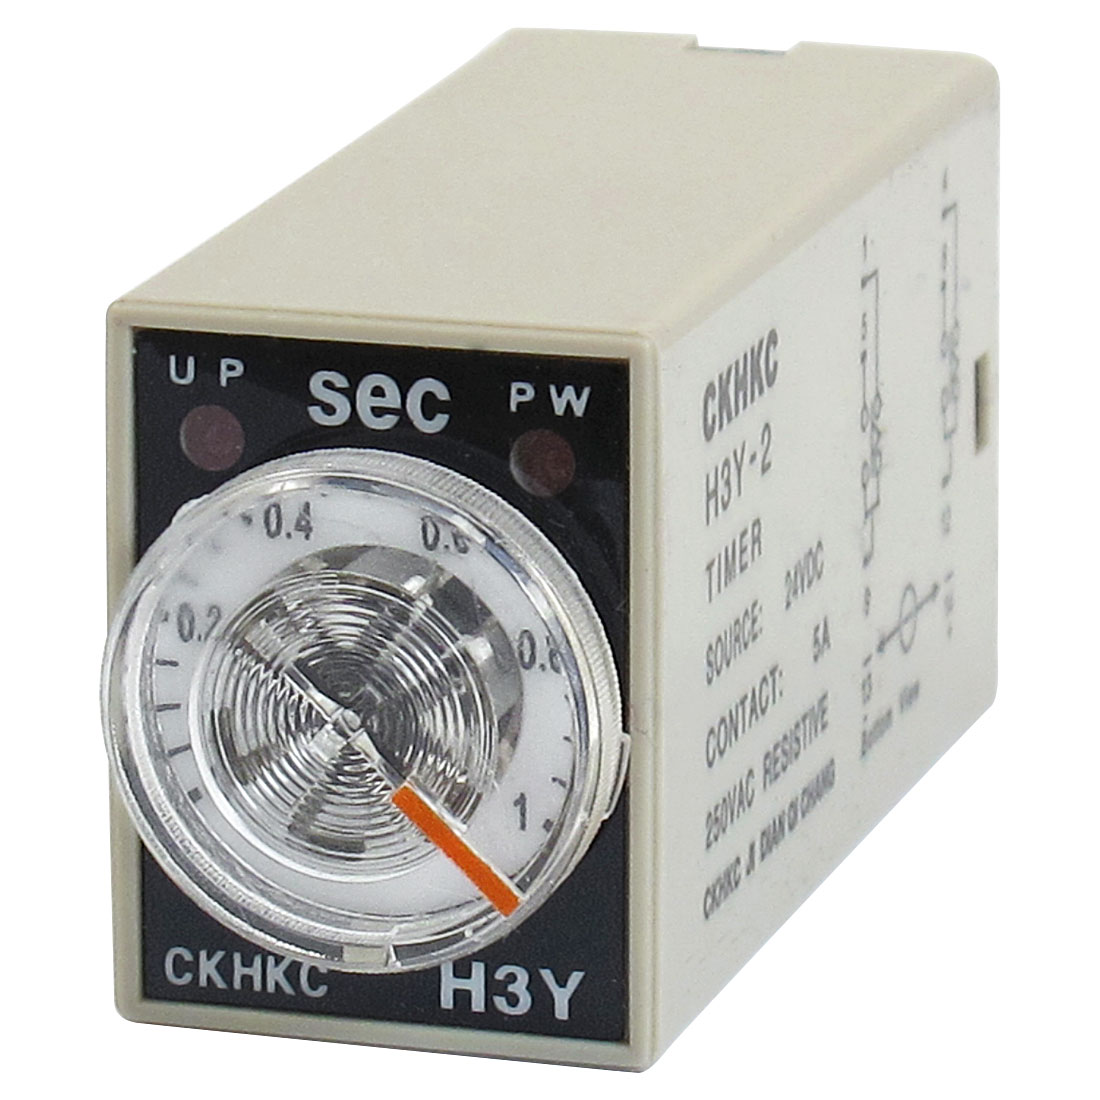 H3Y-2 DC 24V DPDT 0-1 Seconds 1S 8 Pins Power on Time Delay Relay